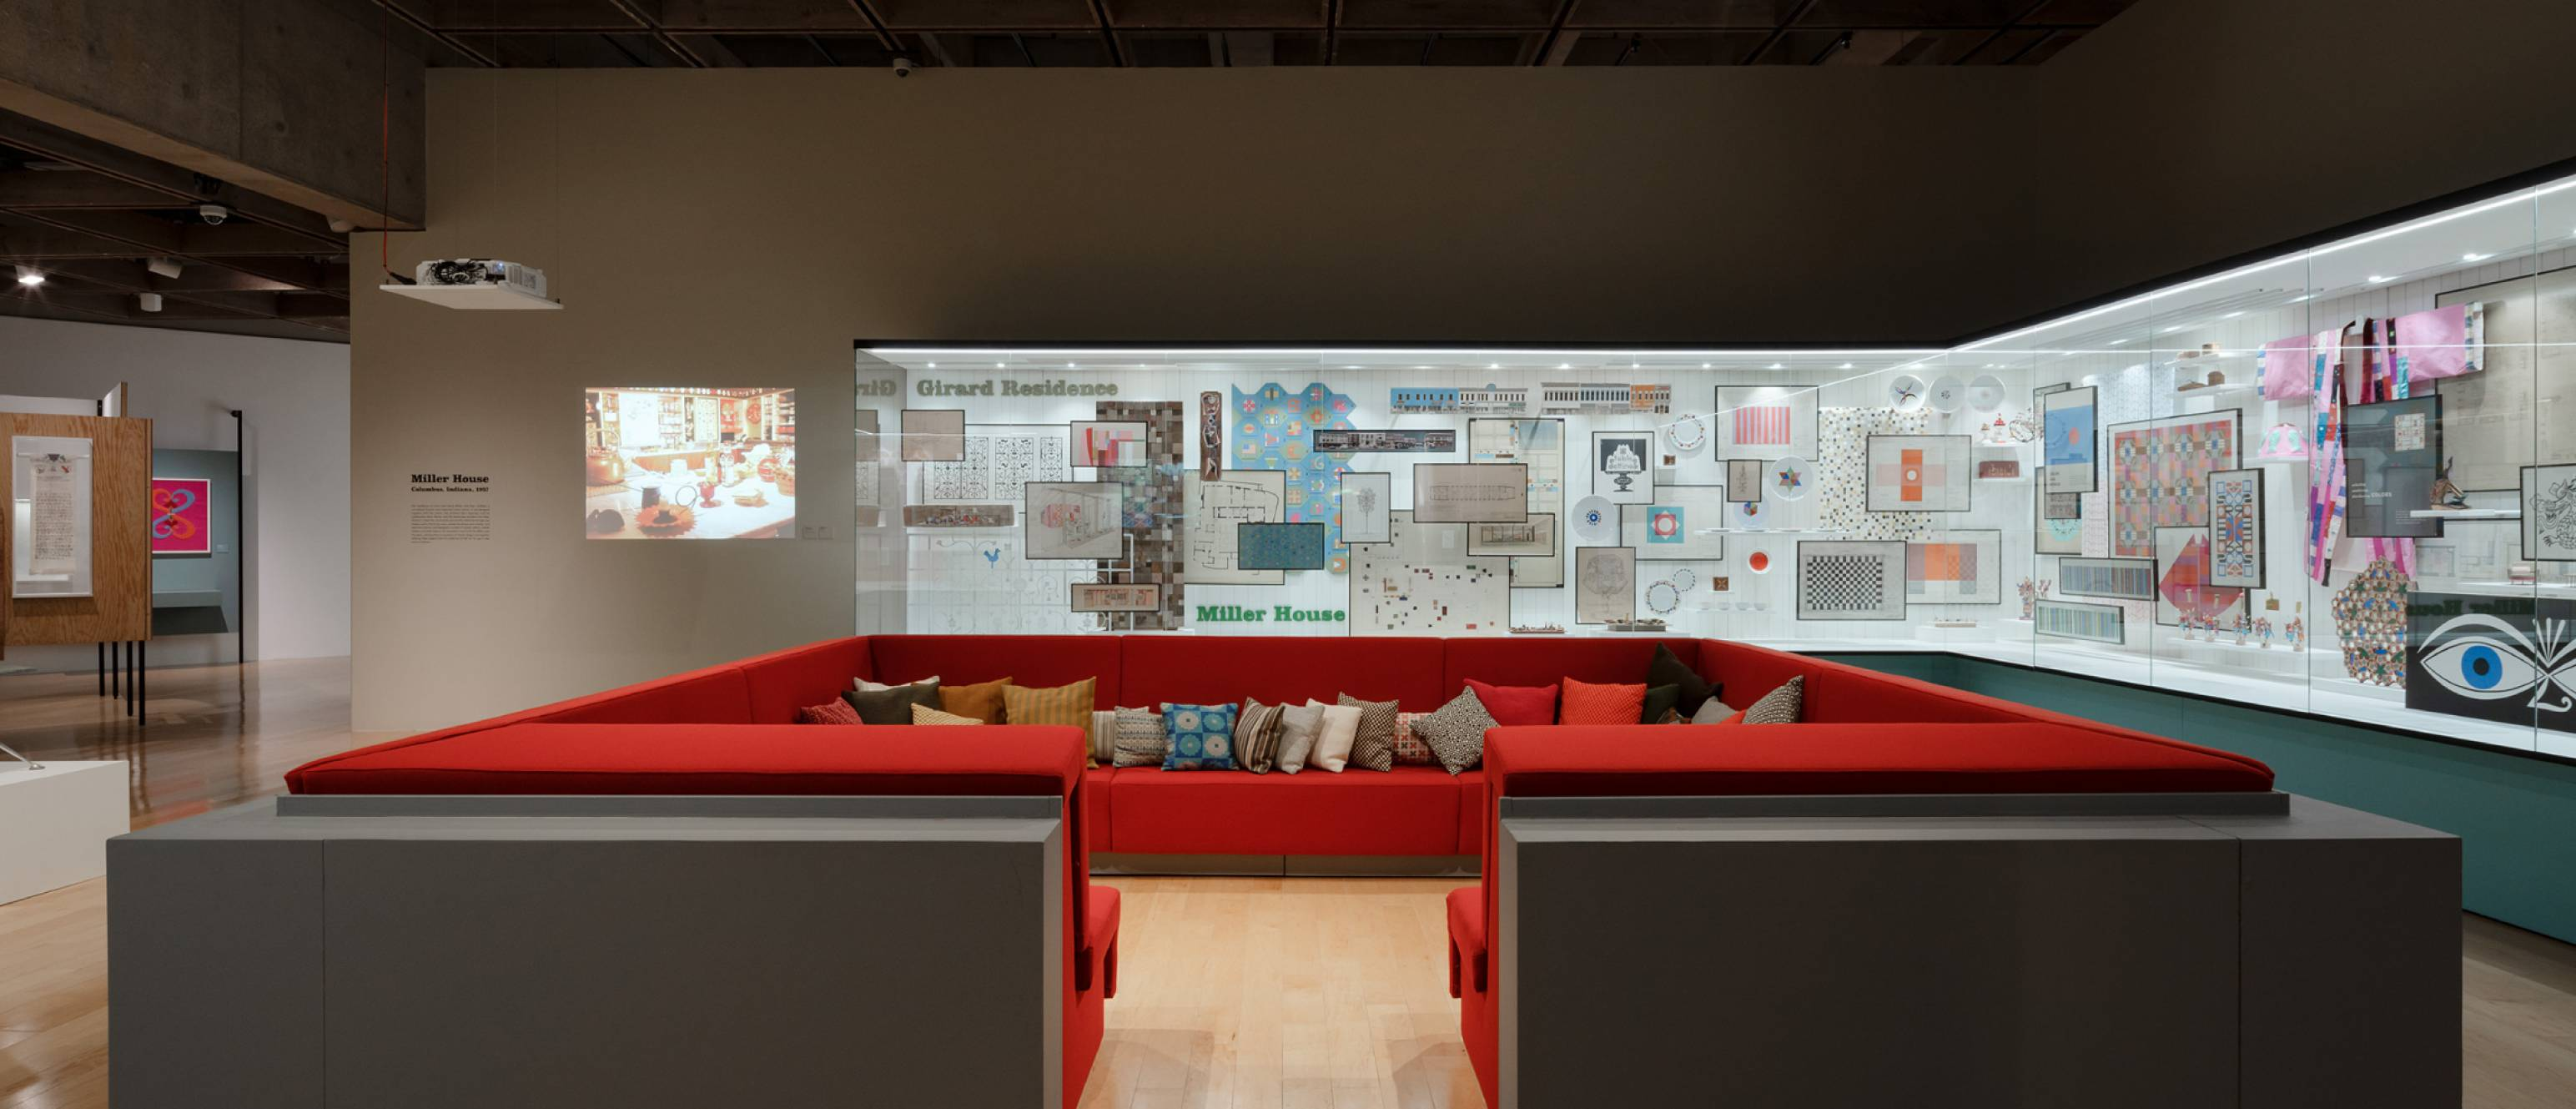 Alexander Girard exhibition, Conversation pit made of red pillows with glass gallery in the back